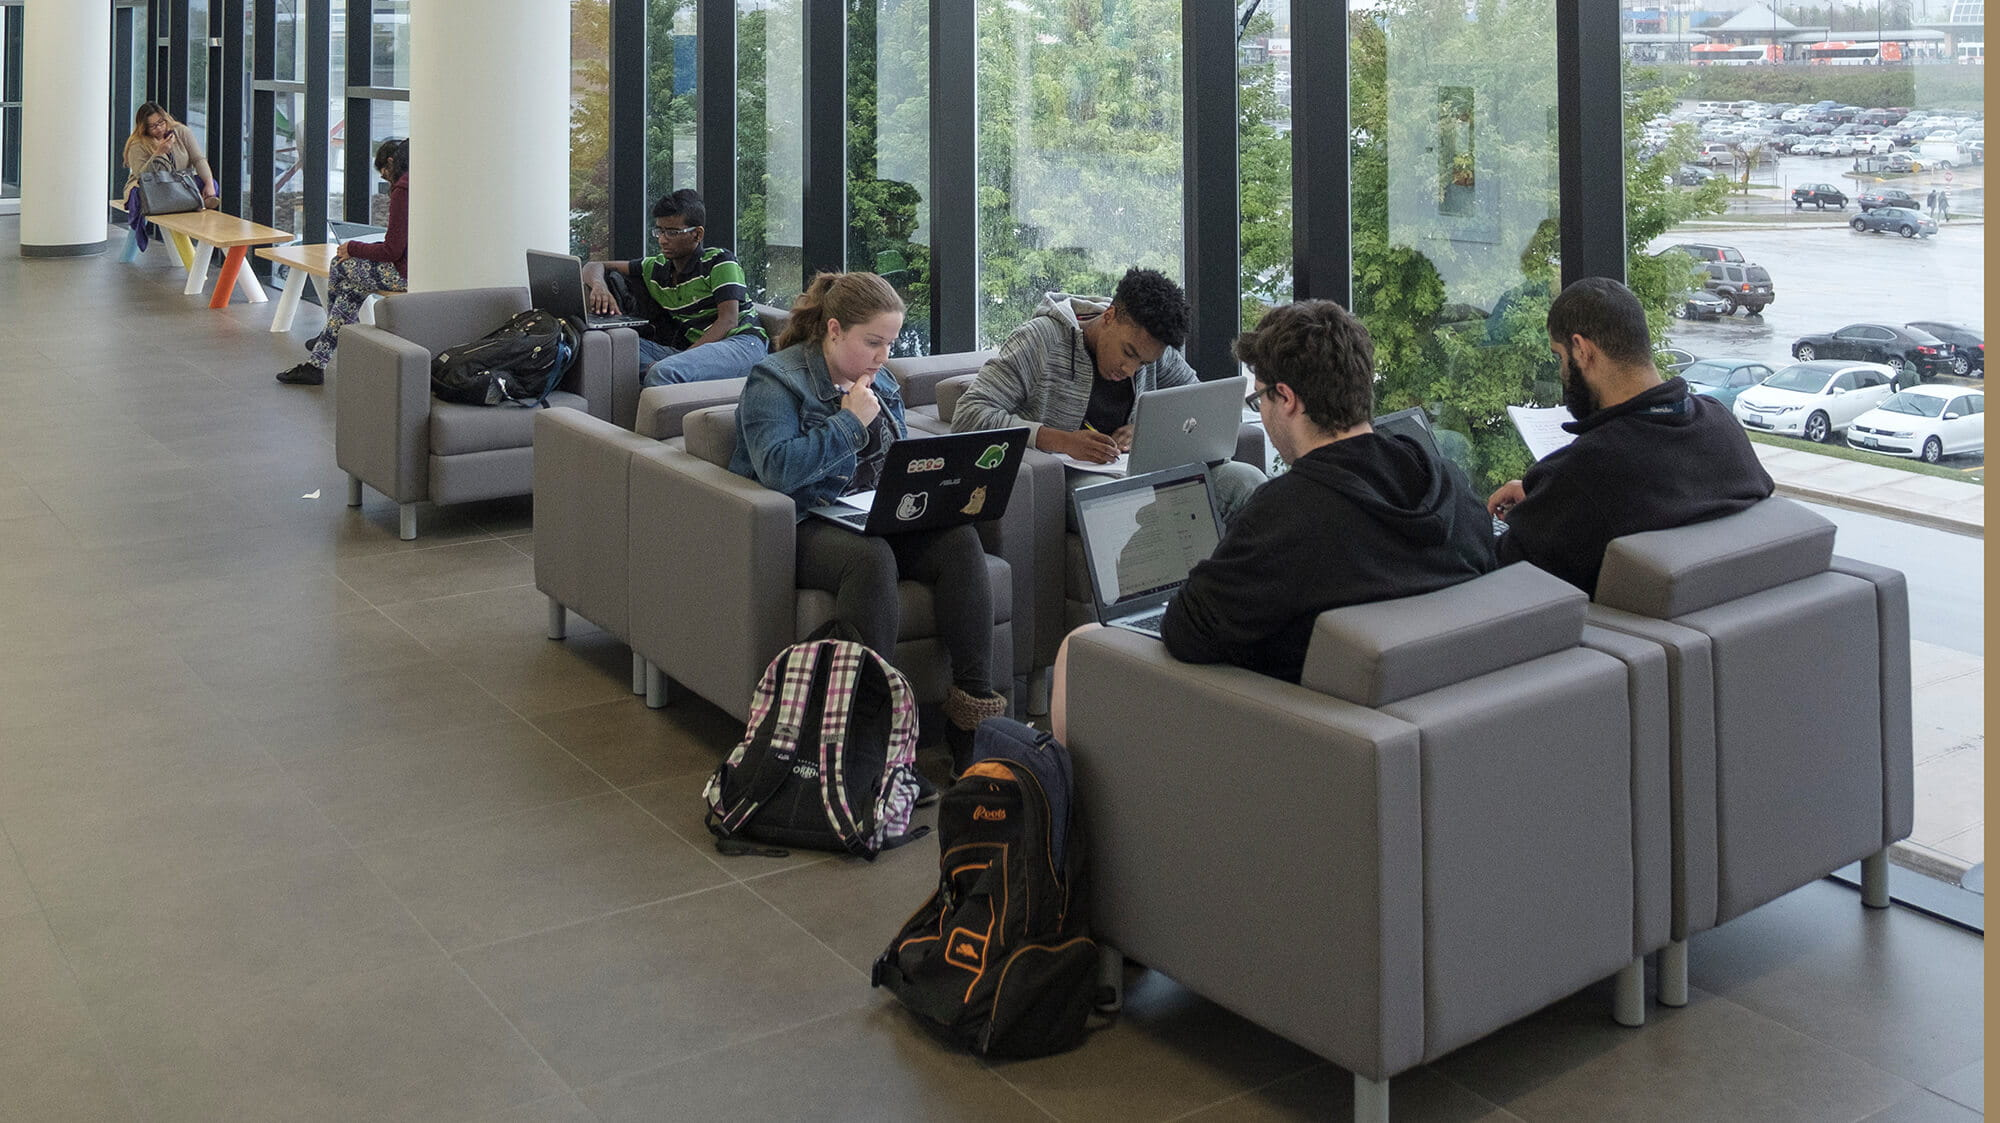 Students with latops sitting in comfortable chairs in a hallway with tall bright windows